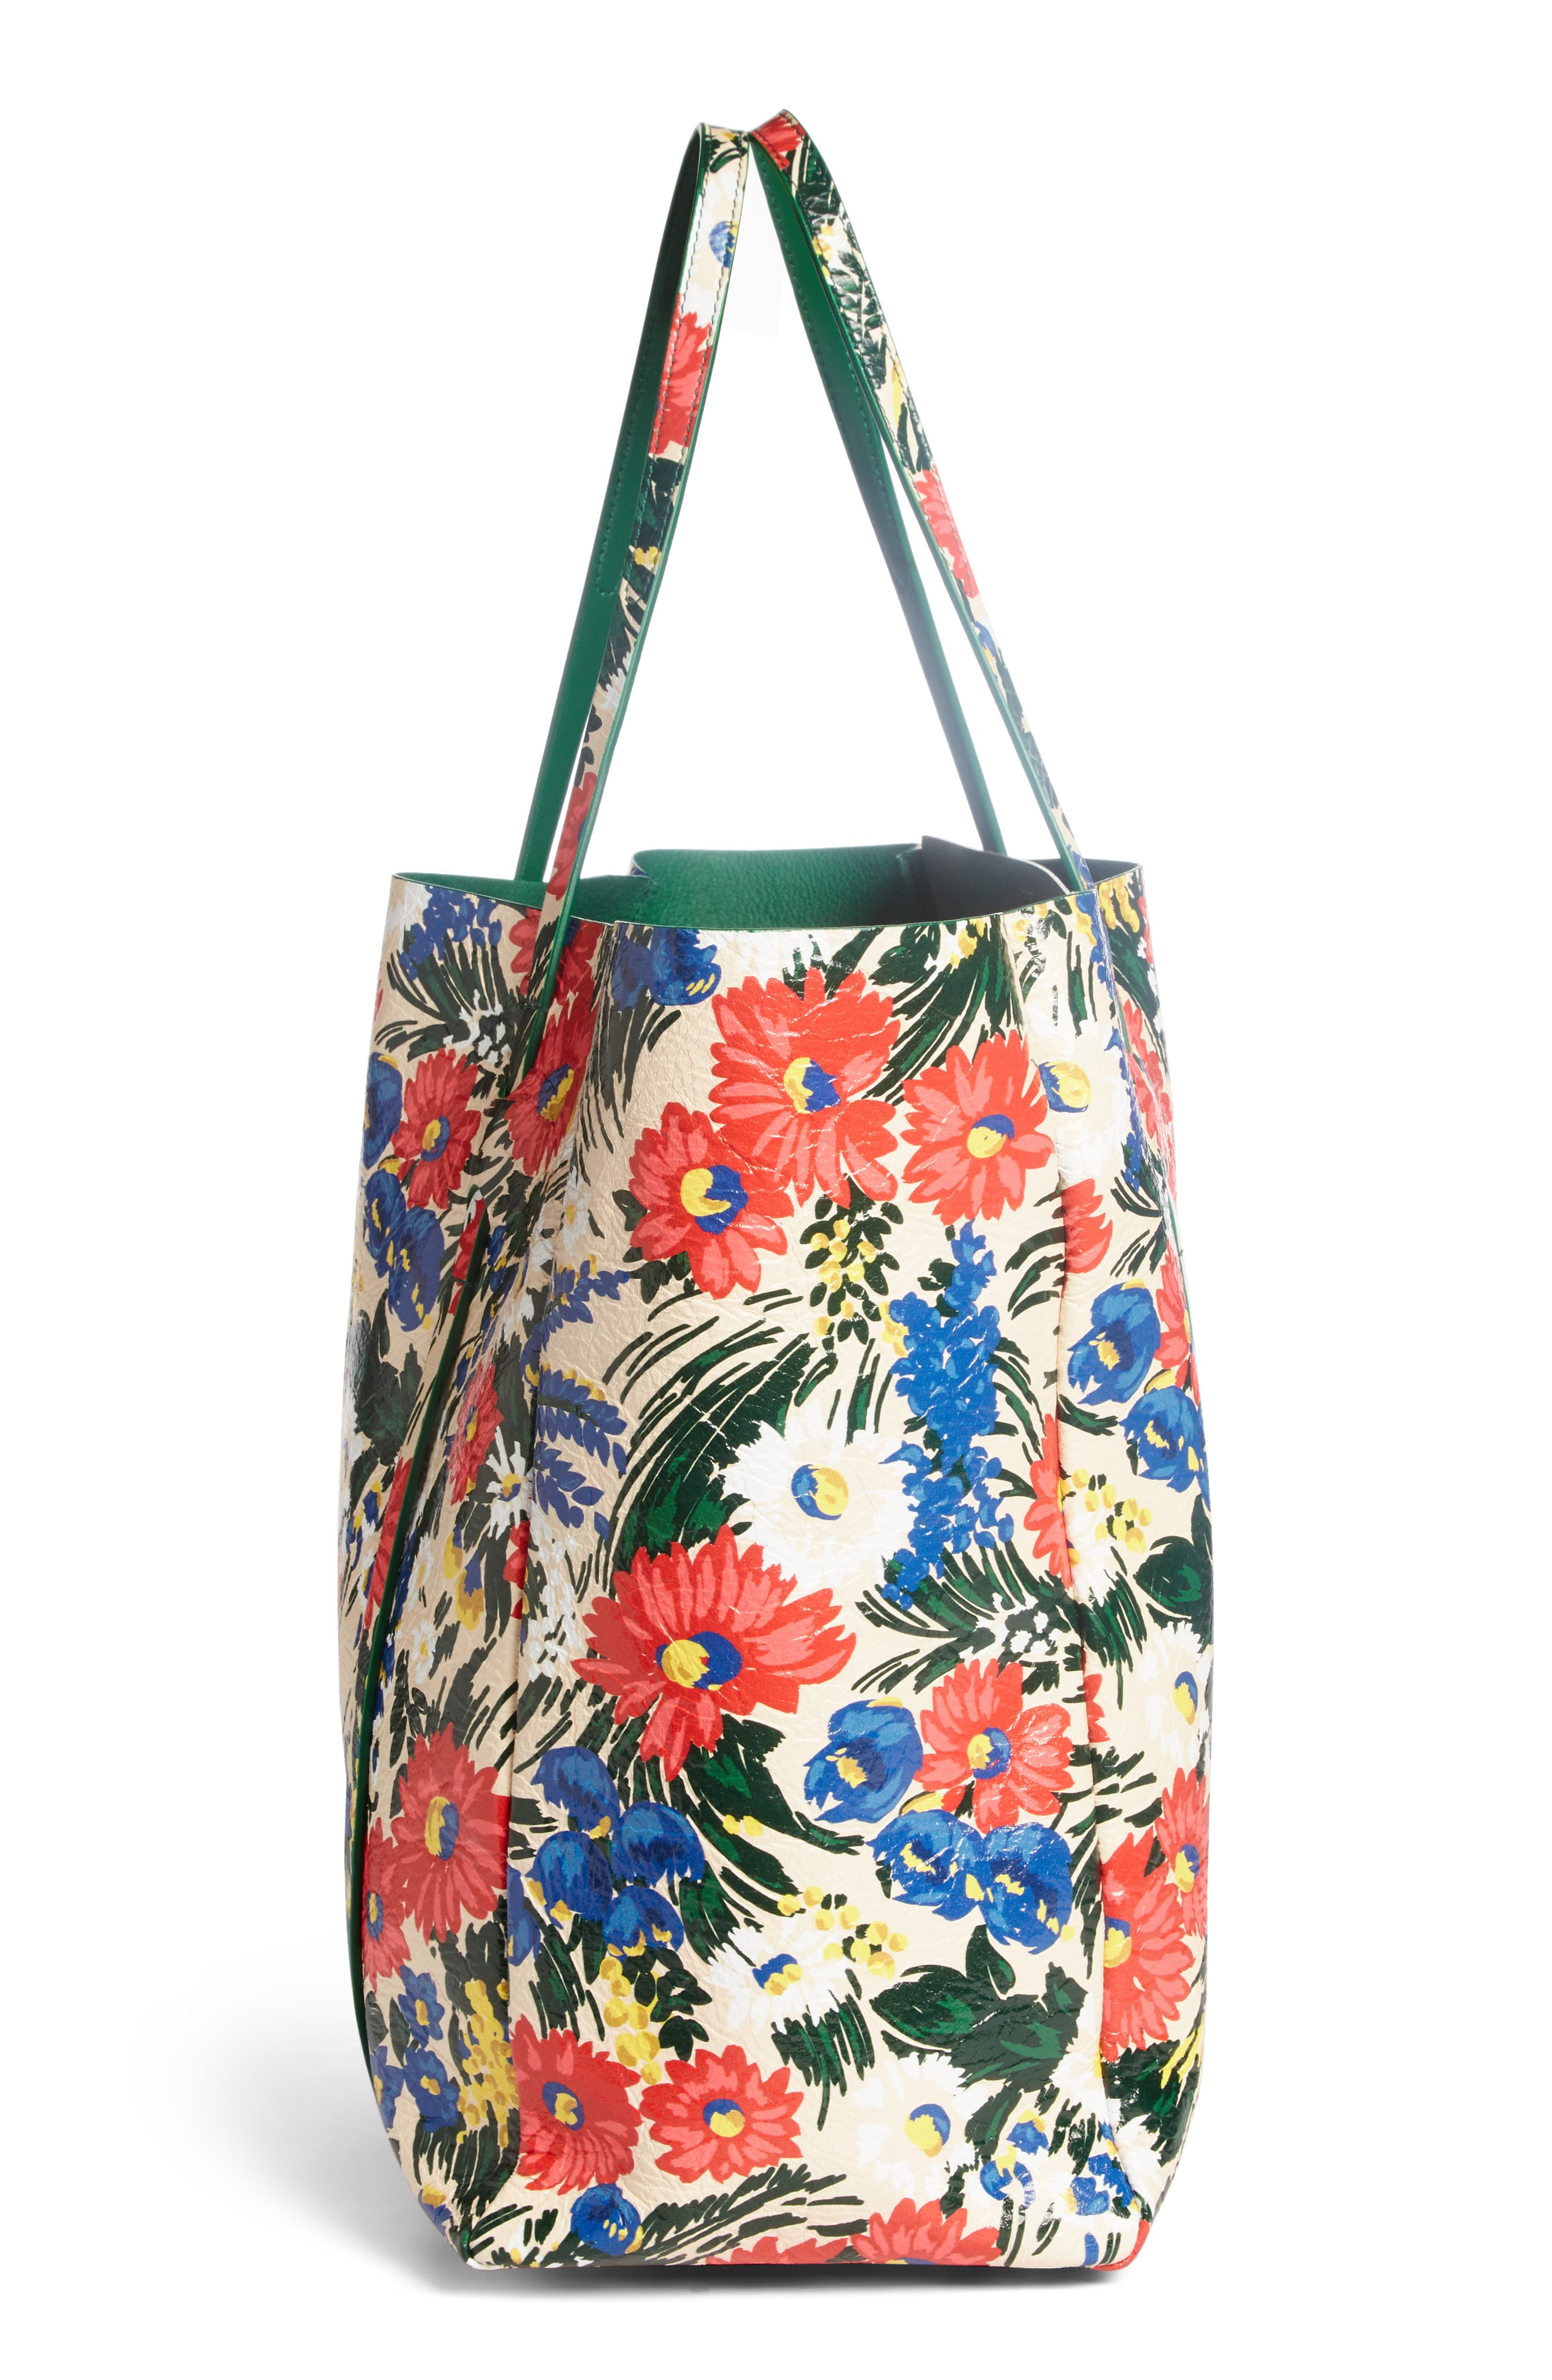 Medium Everyday Floral Leather Tote,                             Alternate thumbnail 3, color,                             Beige/ Rouge/ Vert